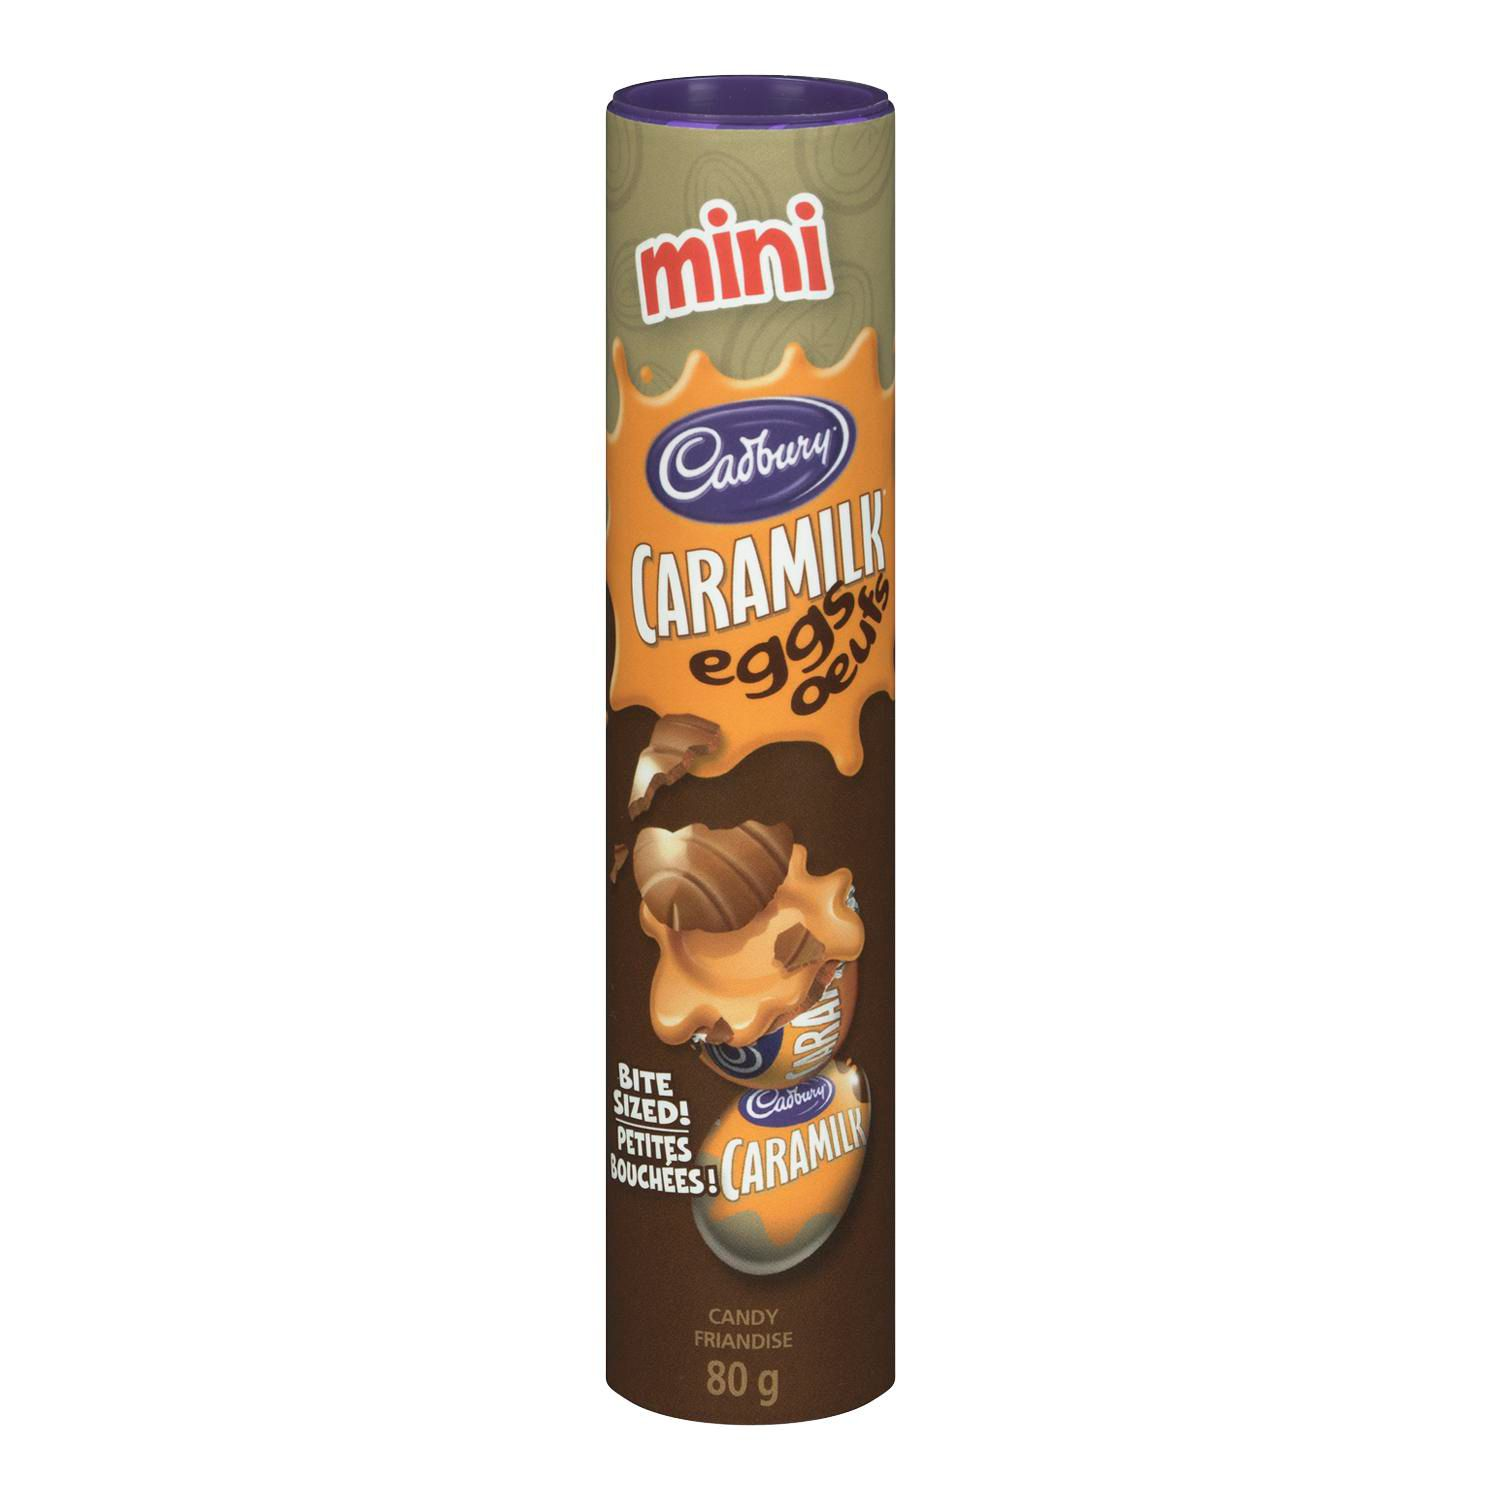 CAD MINI CARAMILK EGG TUBE 80G